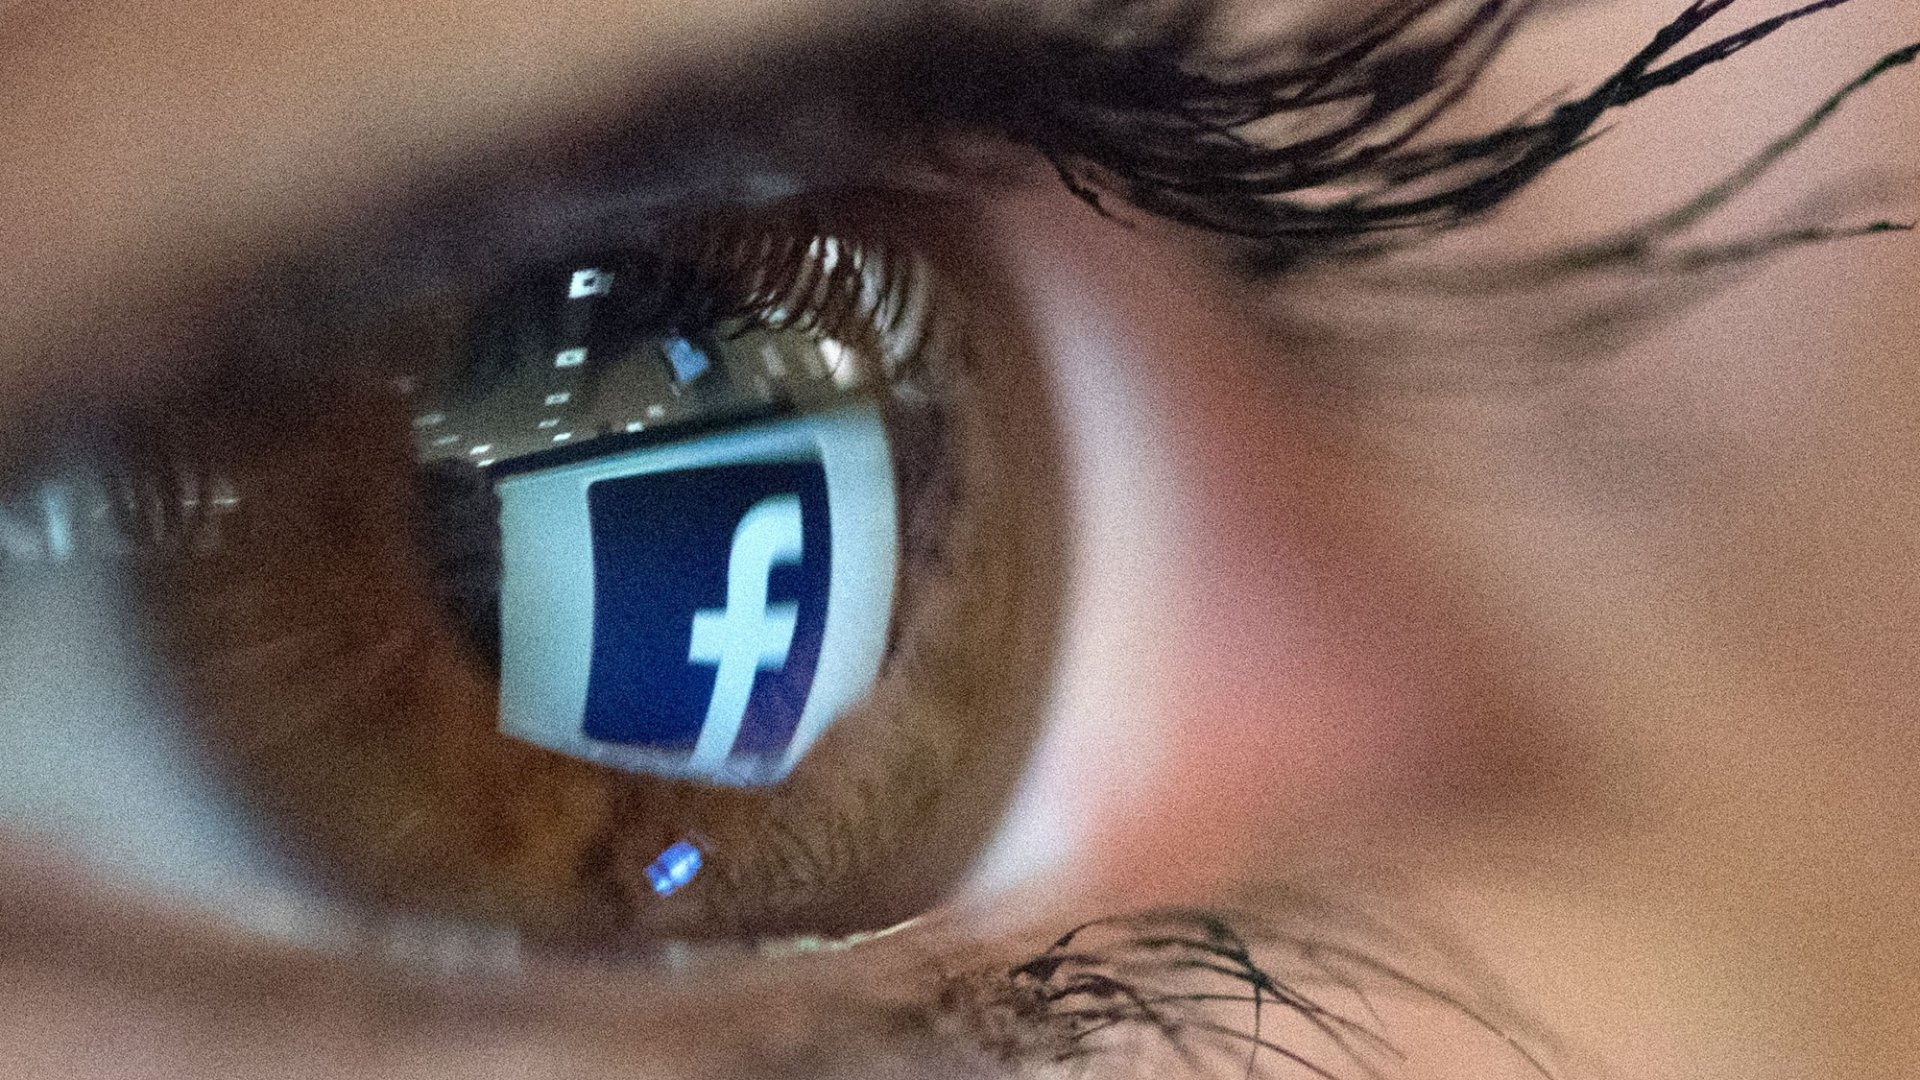 Facebook's Newest Feature? Making Time on Social Media Good for Your Health